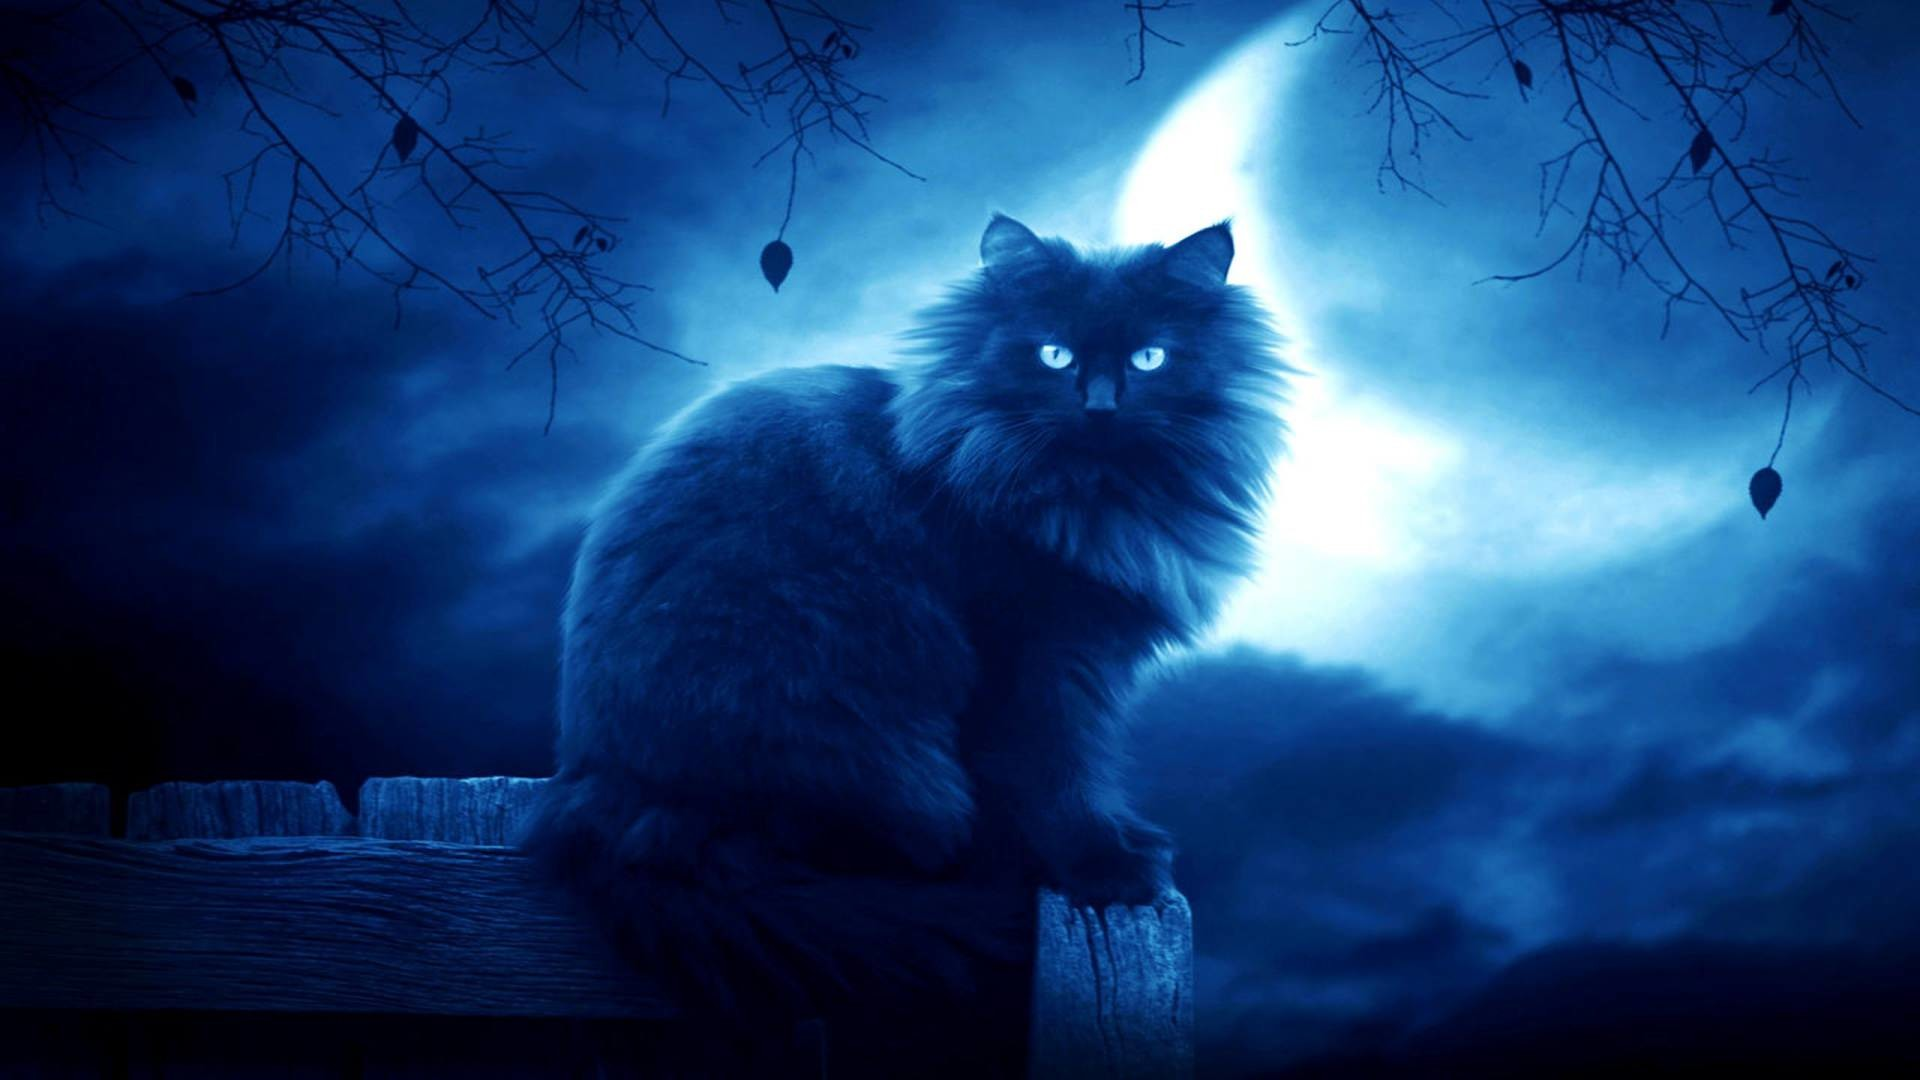 1920x1080 Elegant Look of Cat in Dark Moon Background